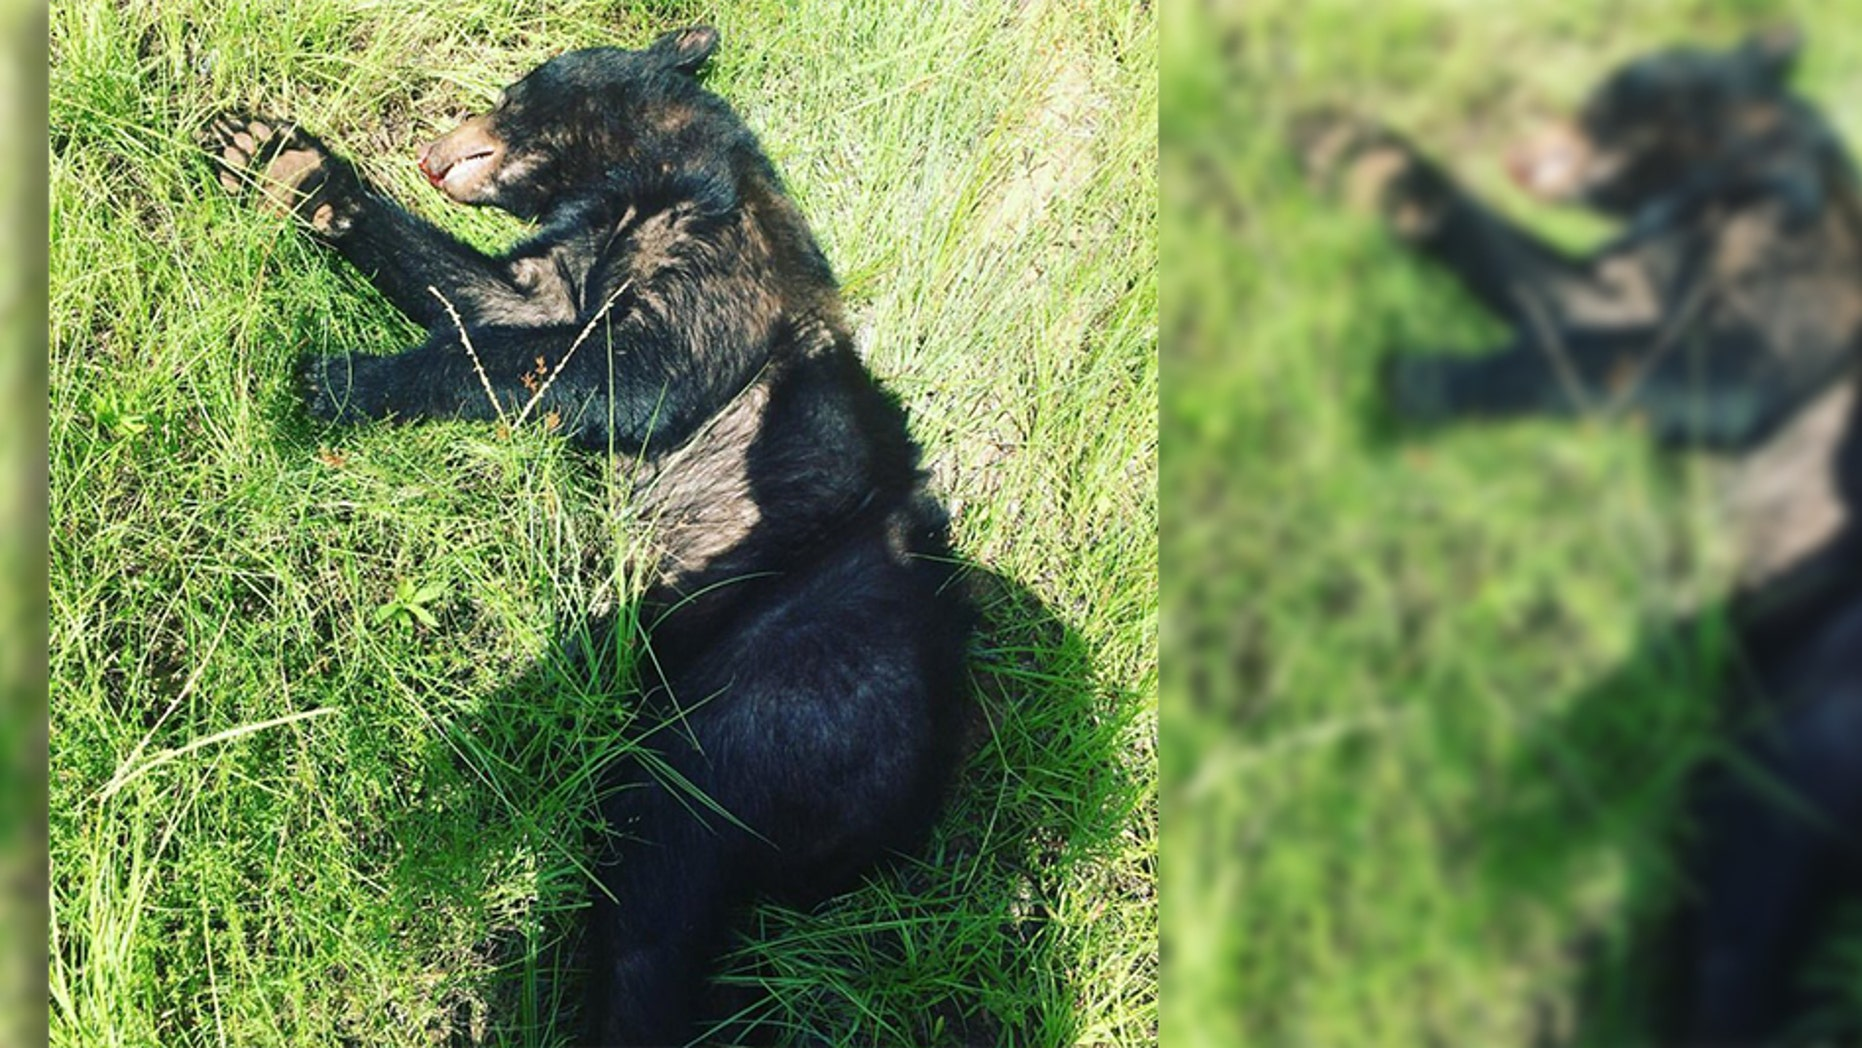 The young male bear was found dead in Warner Robins, police said.